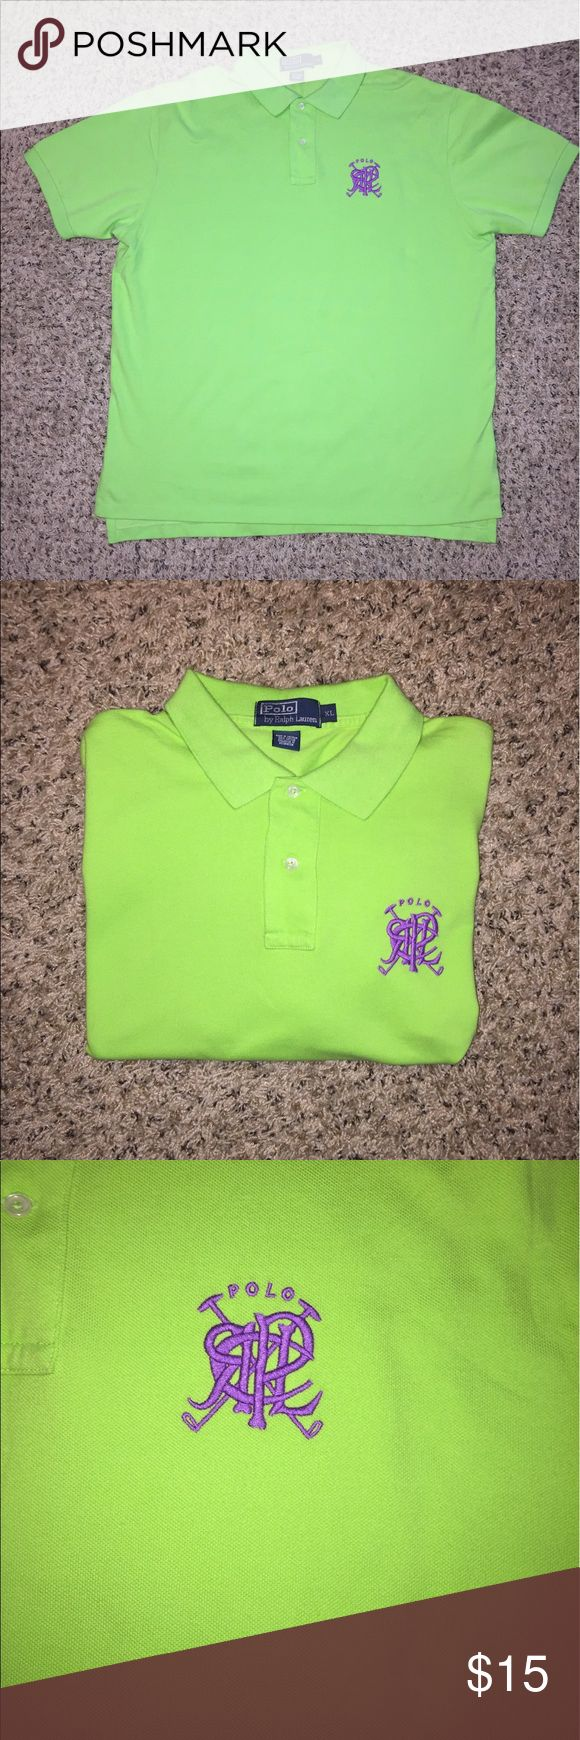 Polo by Ralph Lauren Lime Green Polo Polo by Ralph Lauren Lime Green Polo.  Size XL. Shirt is preowned and in good condition.  No rips, stains or holes.  From a smoke free home. Ralph Lauren Shirts Polos